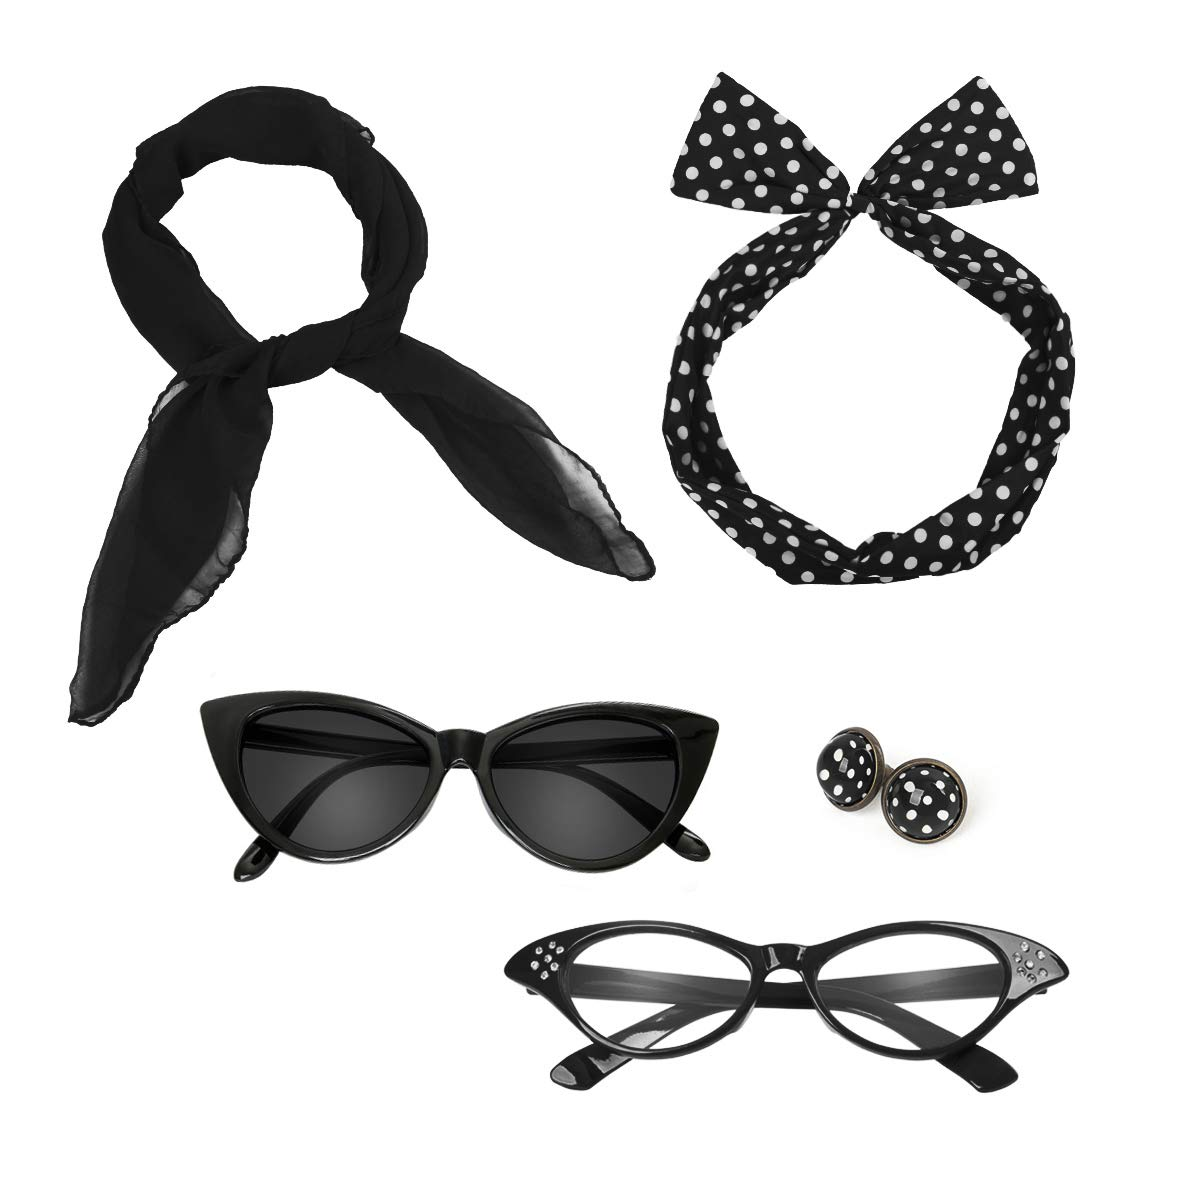 7dbee905138 Amazon.com  Retro 50 s Costume Accessories Set Polka Dot Chiffon Scarf Cat  Eye Glasses Bandana Tie Headband   Earrings Girls Women Ladies Dress up ( Black)  ...